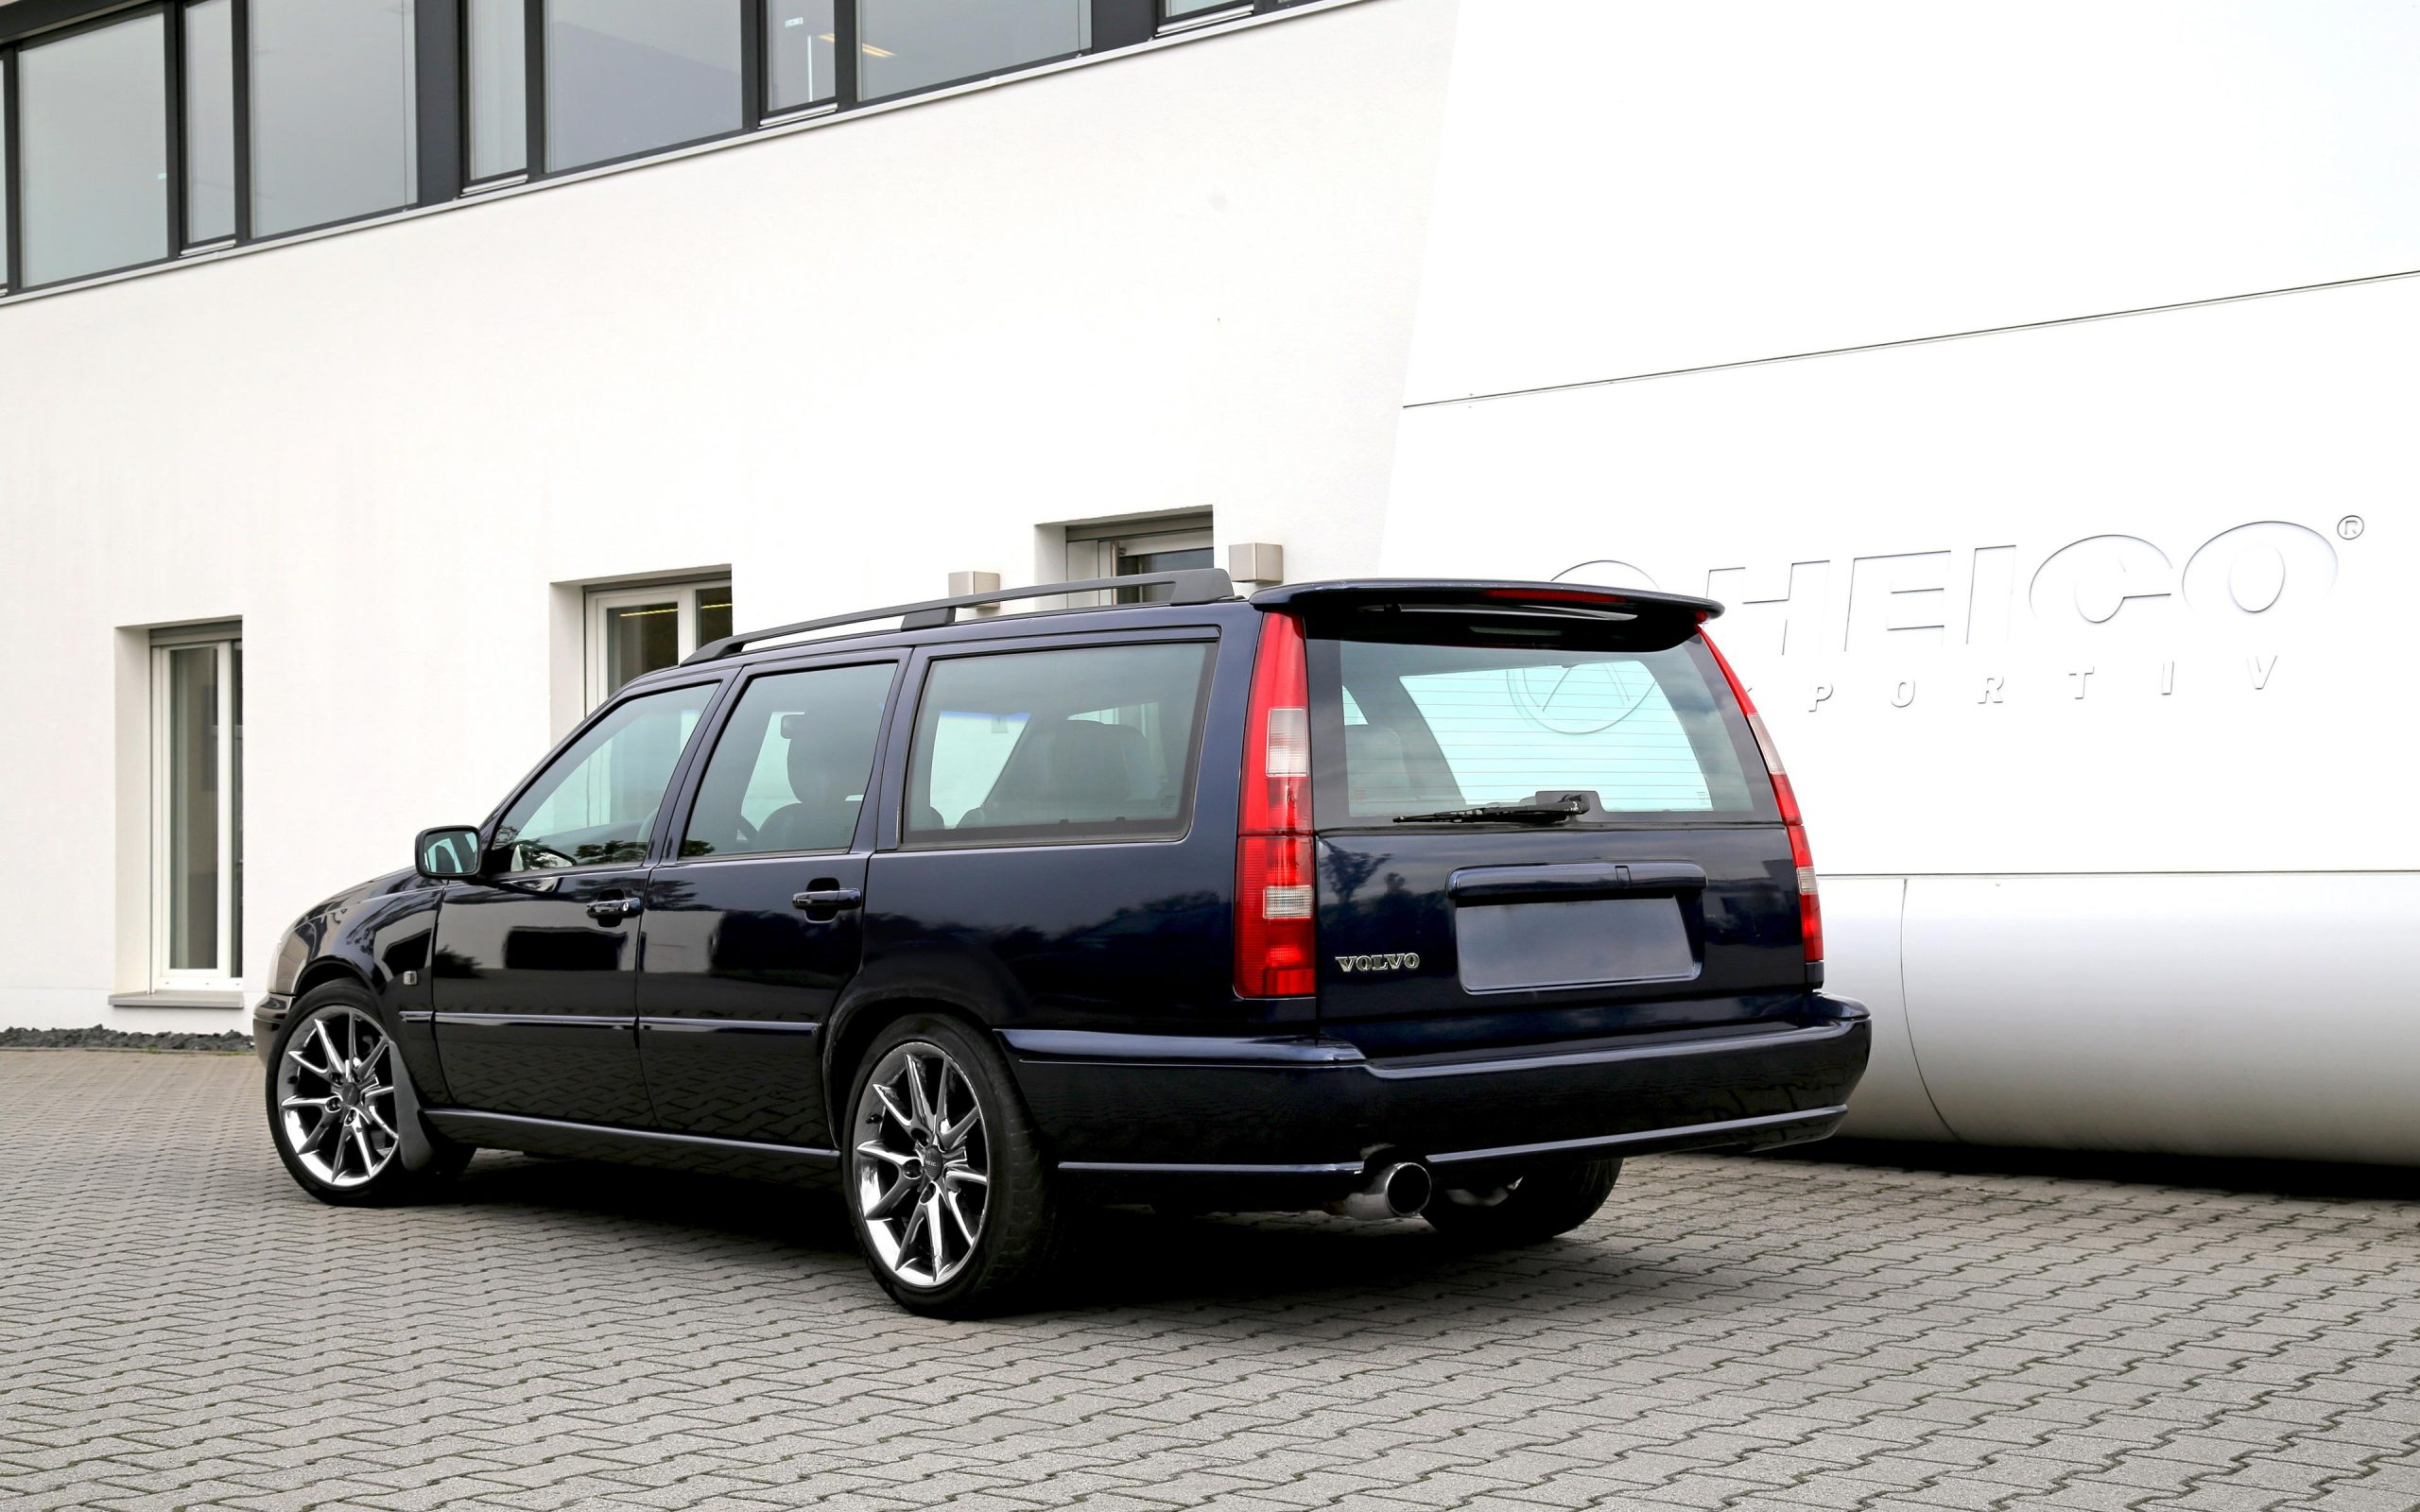 heico-sportiv-V70-edition-rear-1_0